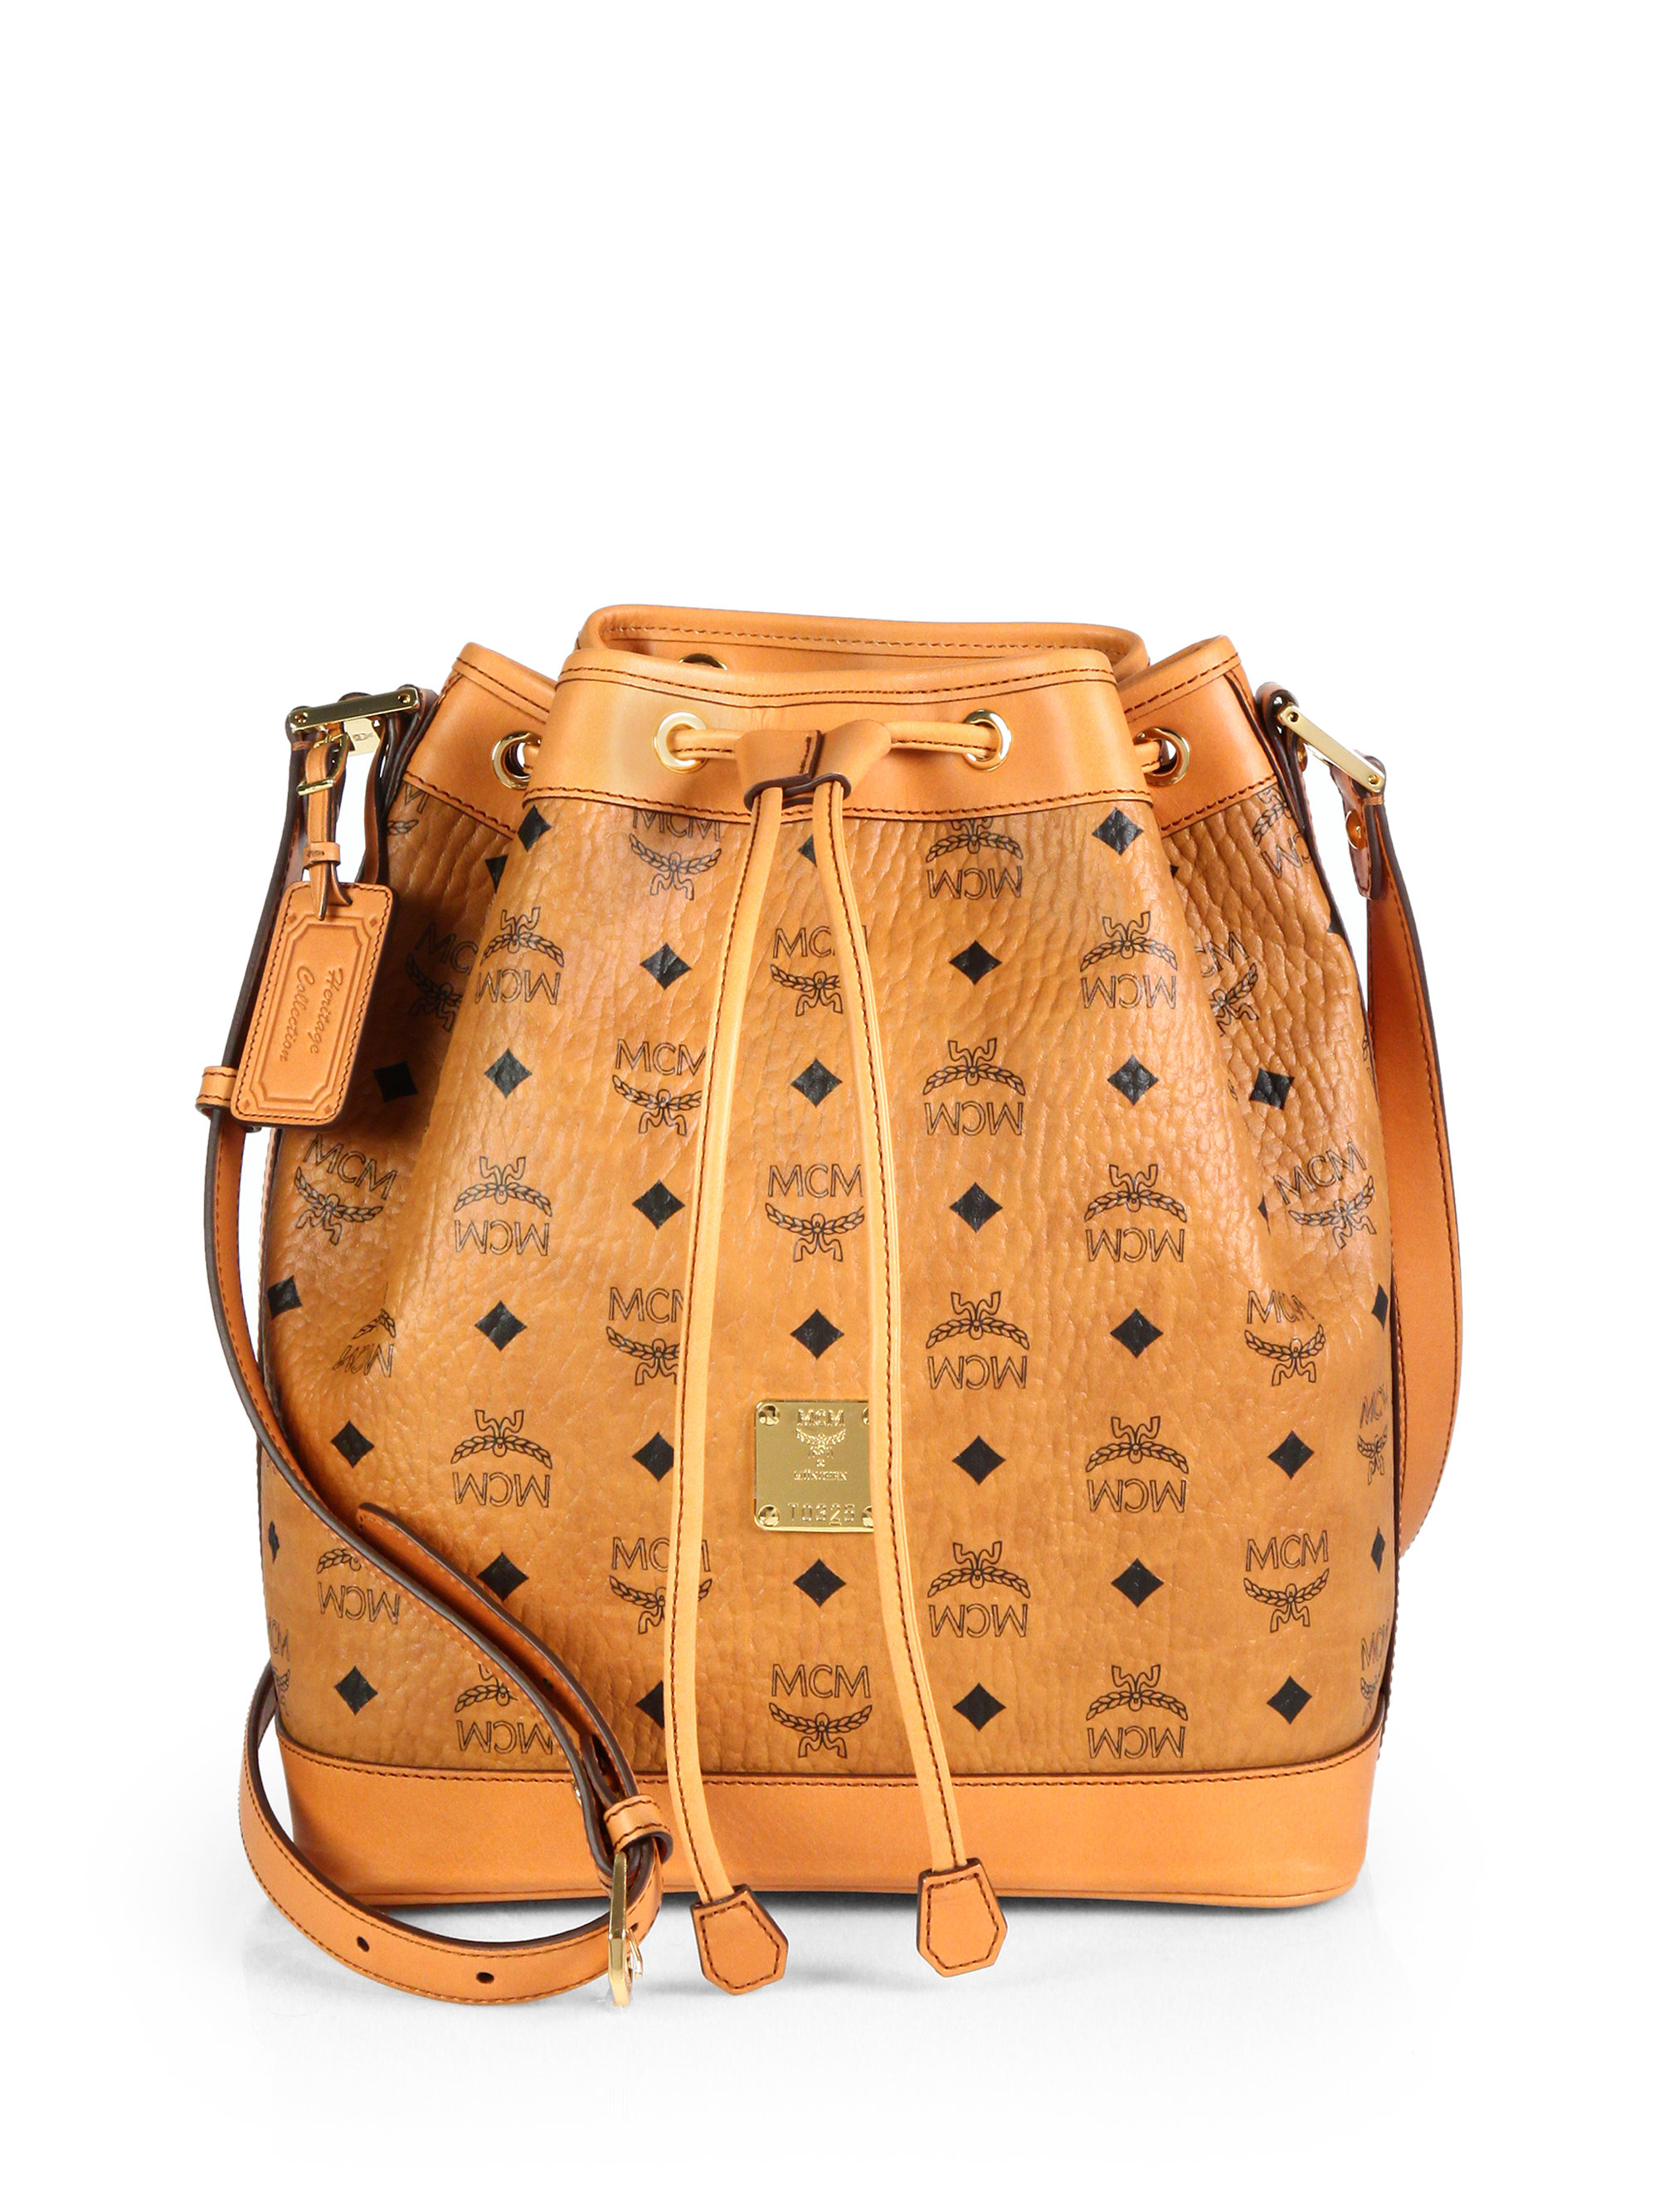 Mcm Heritage Small Coated Canvas Bucket Bag in Brown